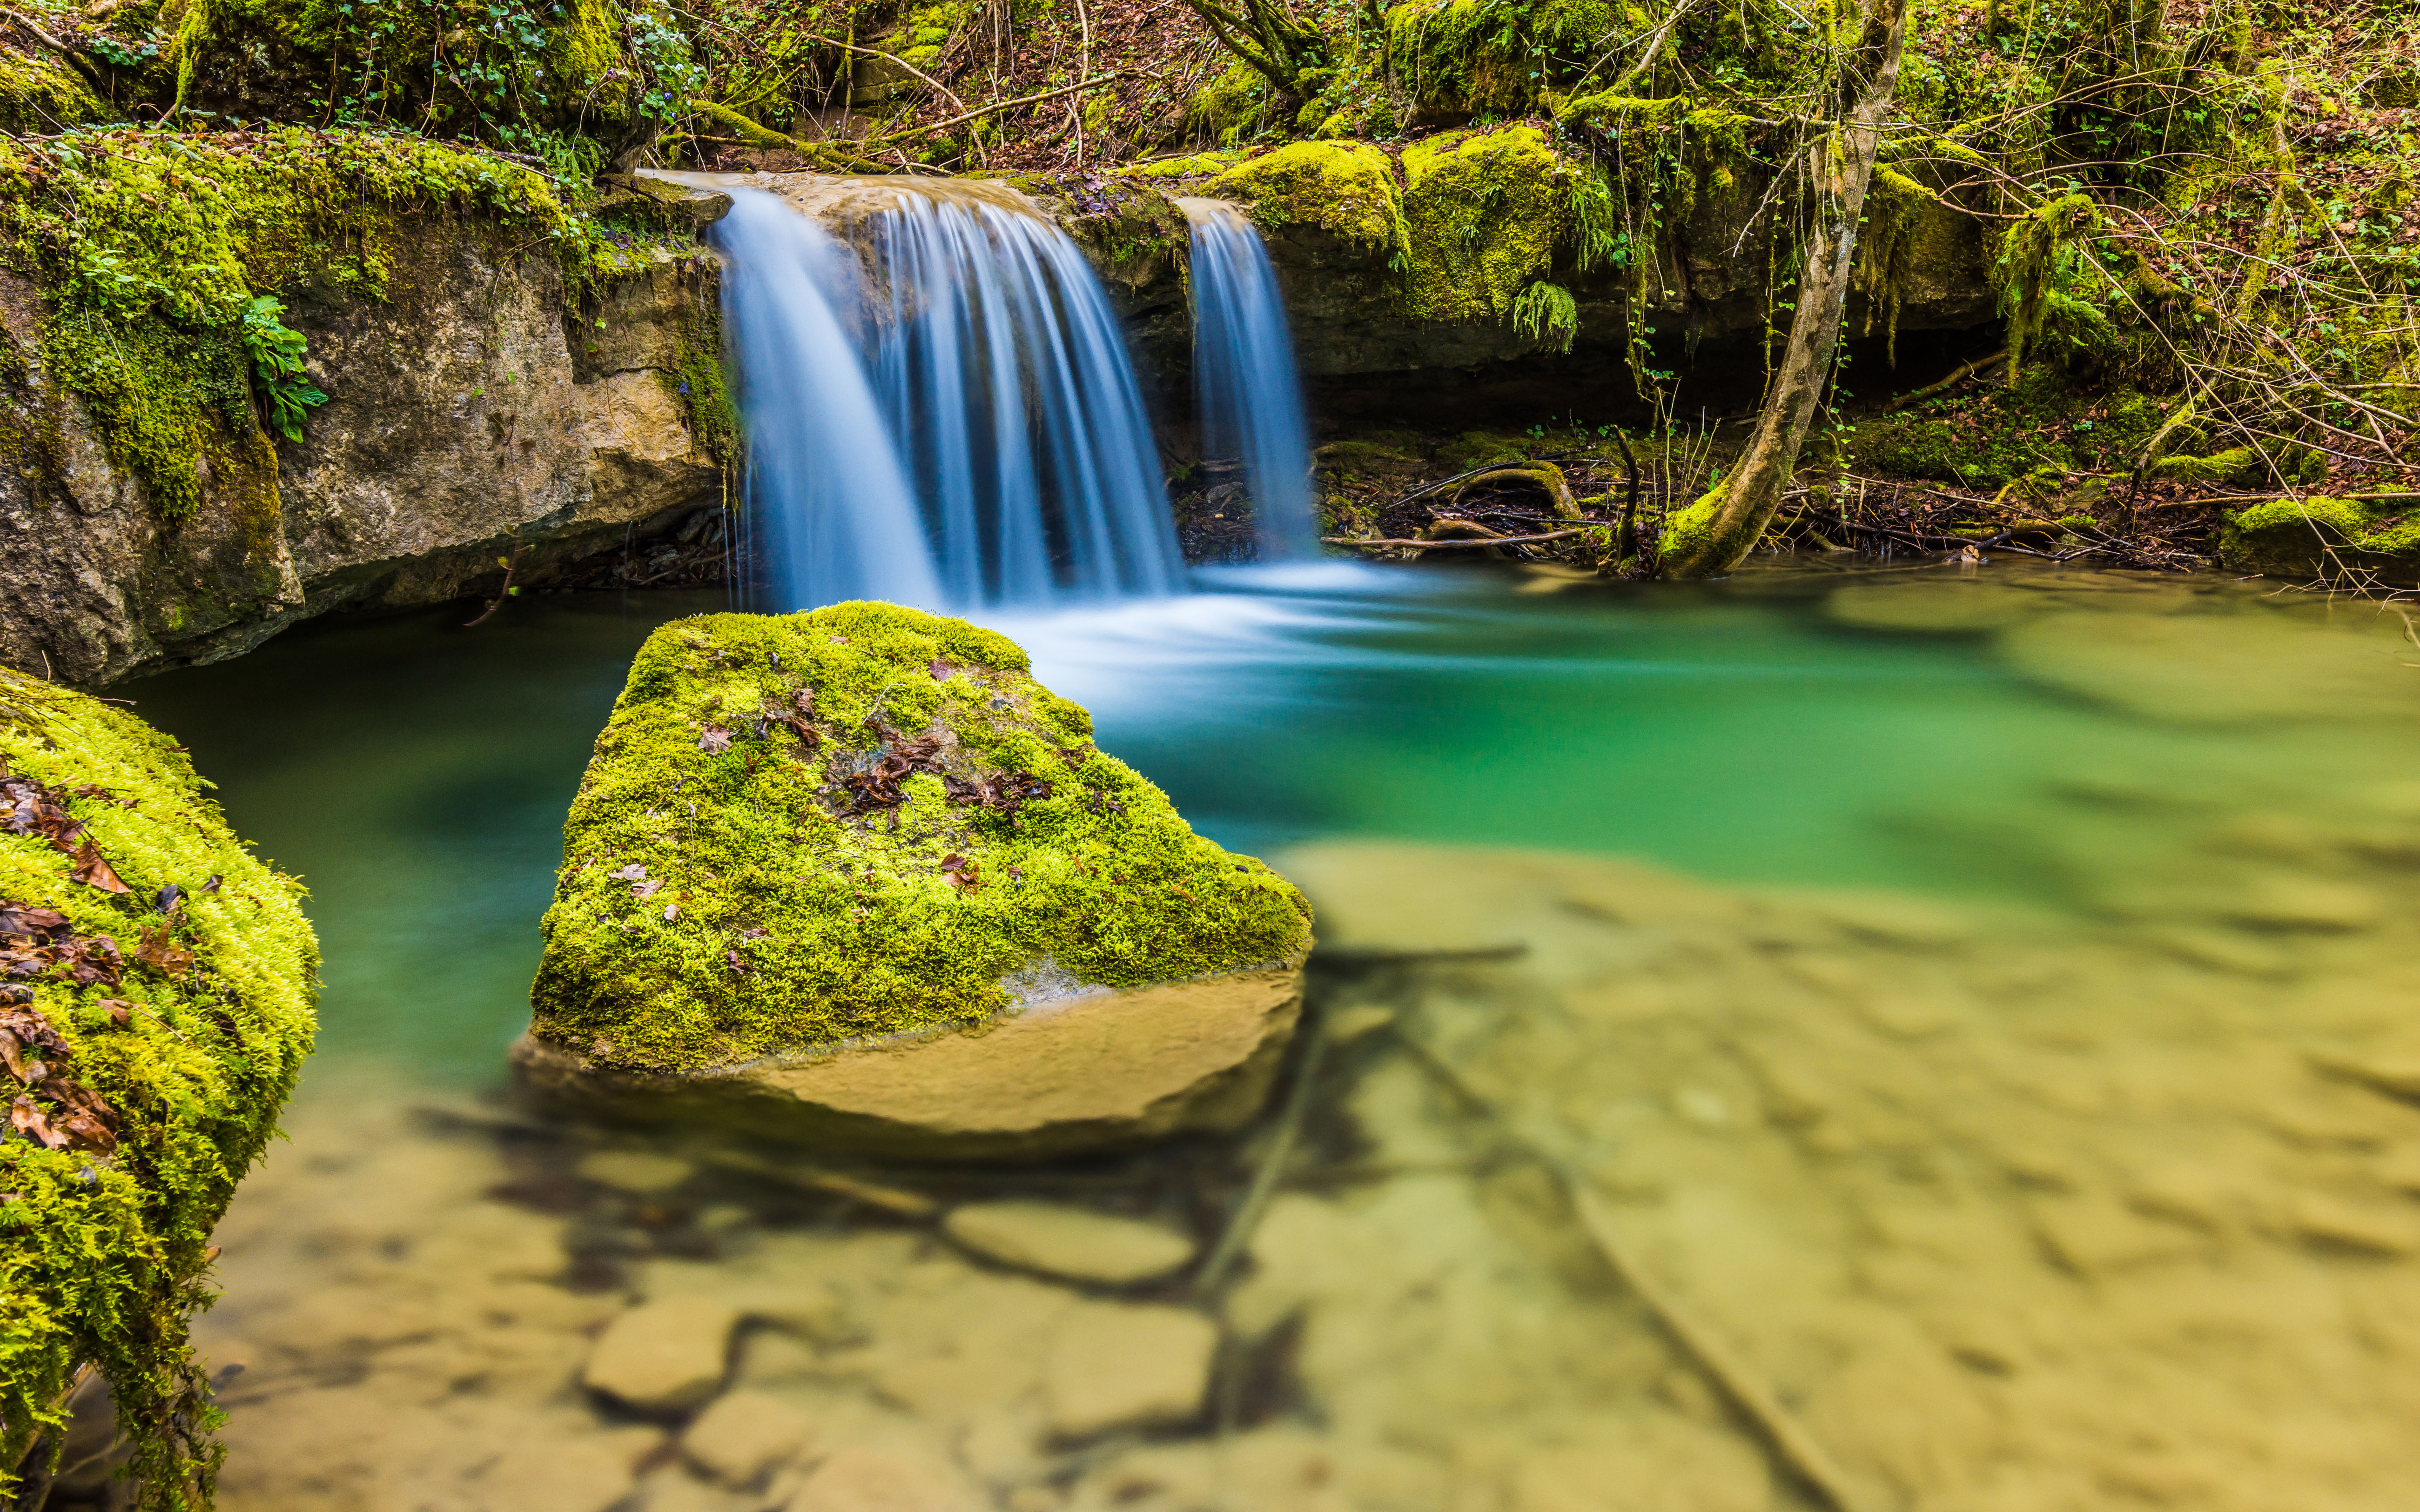 Autumn Fall Wallpaper Free Nice Small Waterfall Clear Water Rocks With Moss Hd